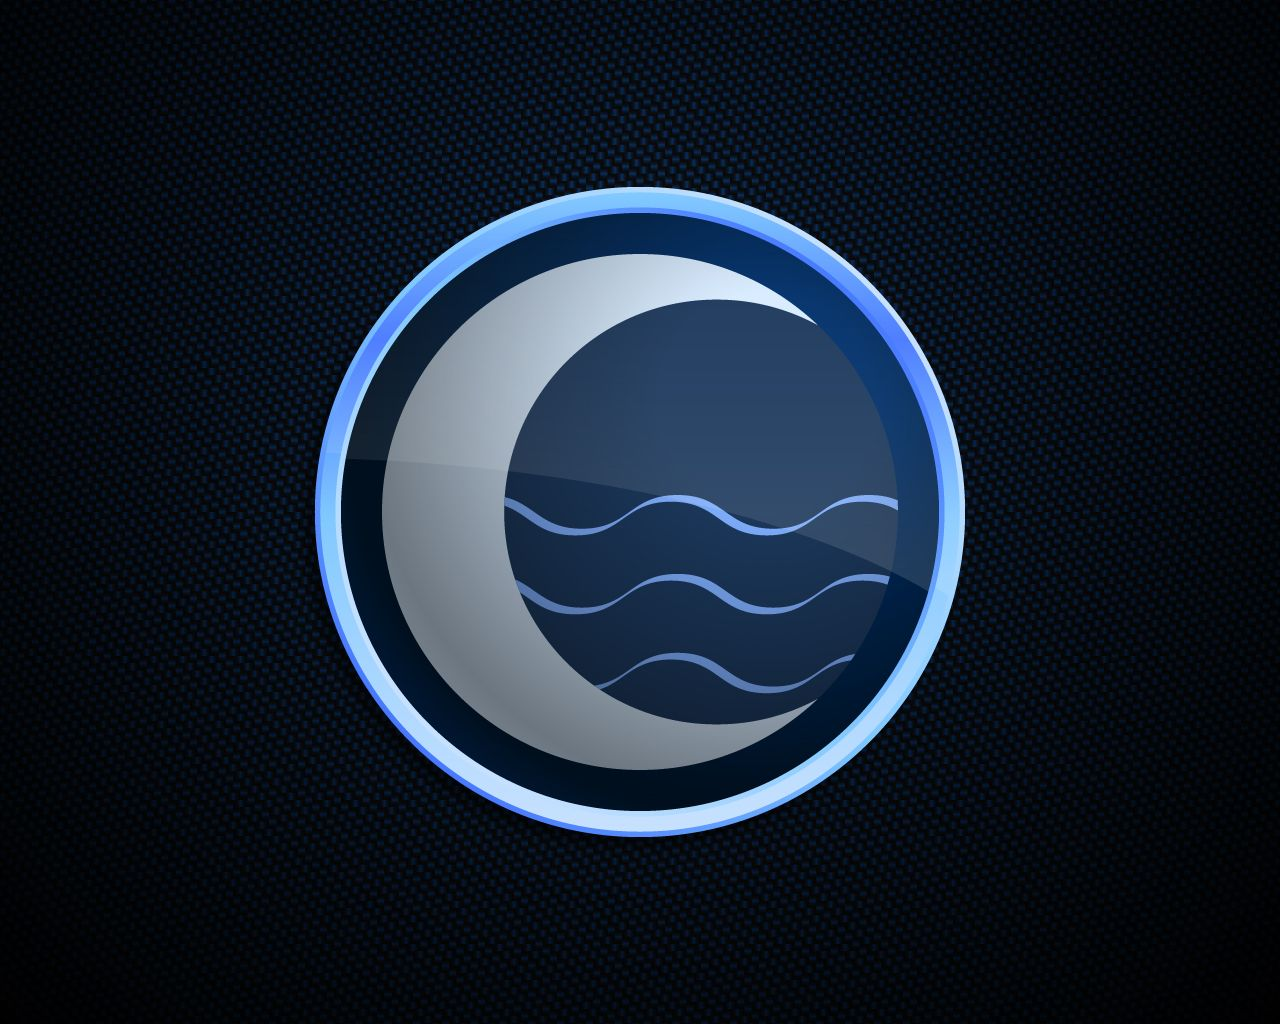 Avatar The Last Airbender Water Tribe Symbol This Is The Water